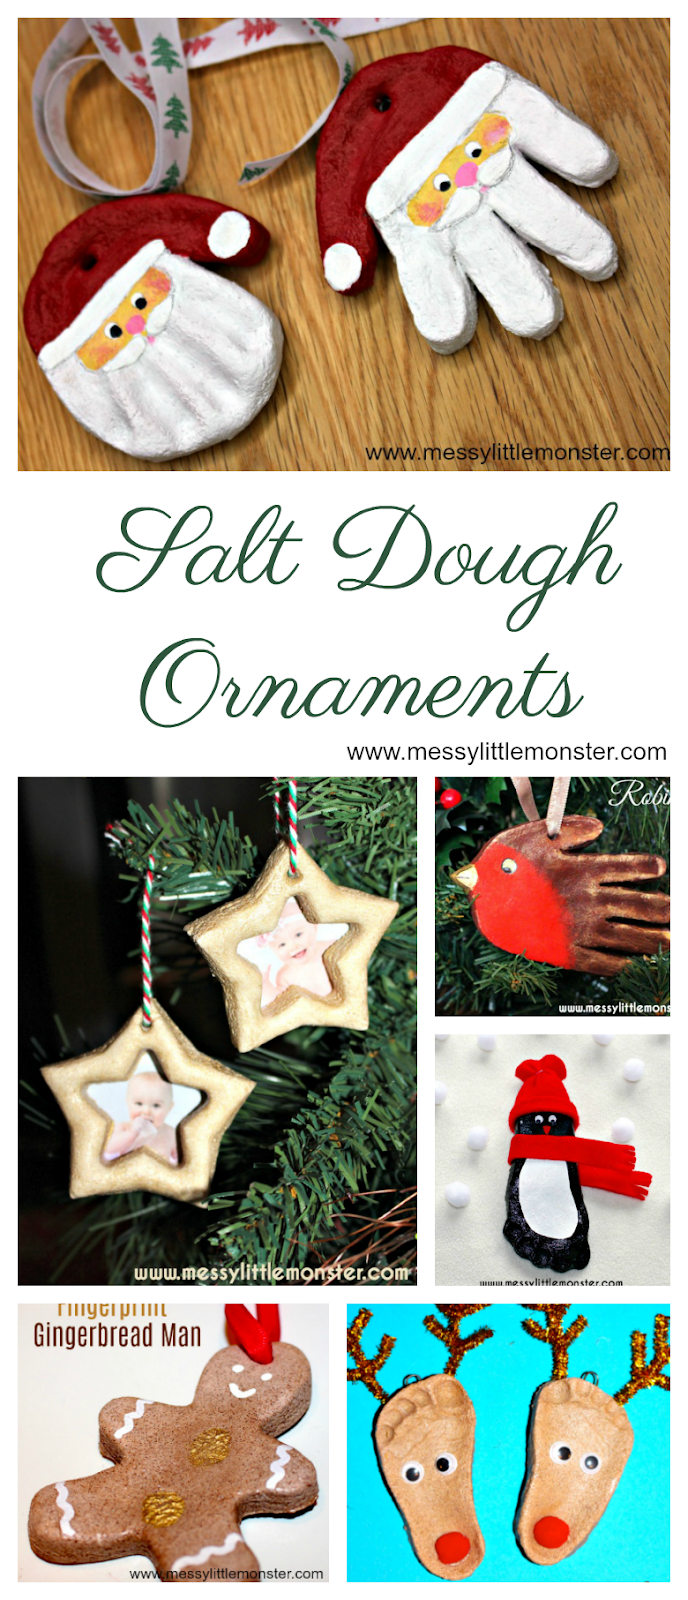 Salt dough ornaments. Use our salt dough ornament recipe to make your own salt dough Christmas ornaments. Christmas crafts for kids.